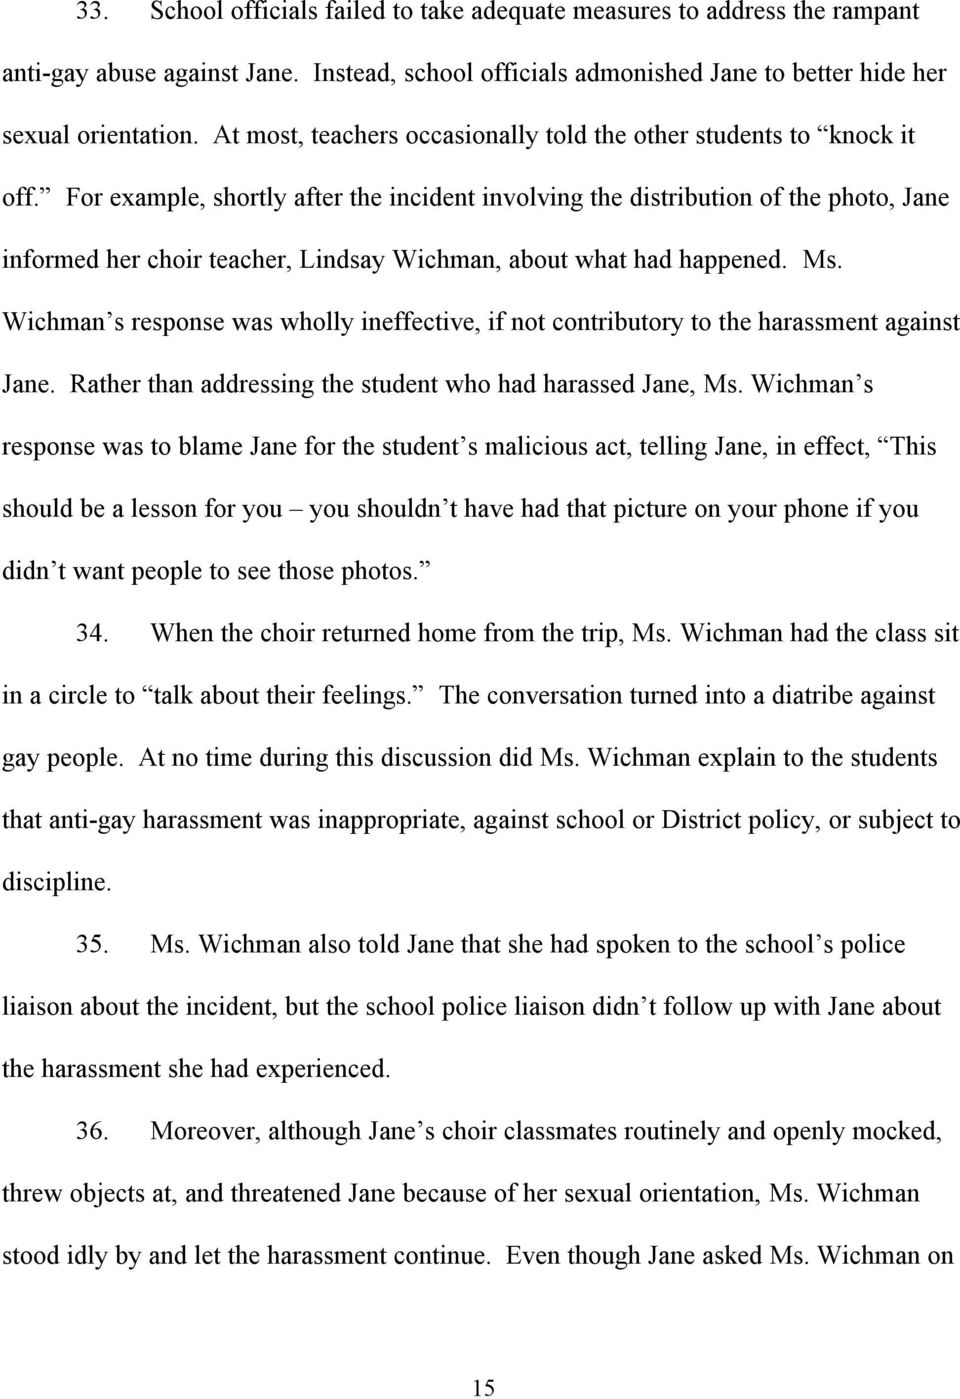 For example, shortly after the incident involving the distribution of the photo, Jane informed her choir teacher, Lindsay Wichman, about what had happened. Ms.